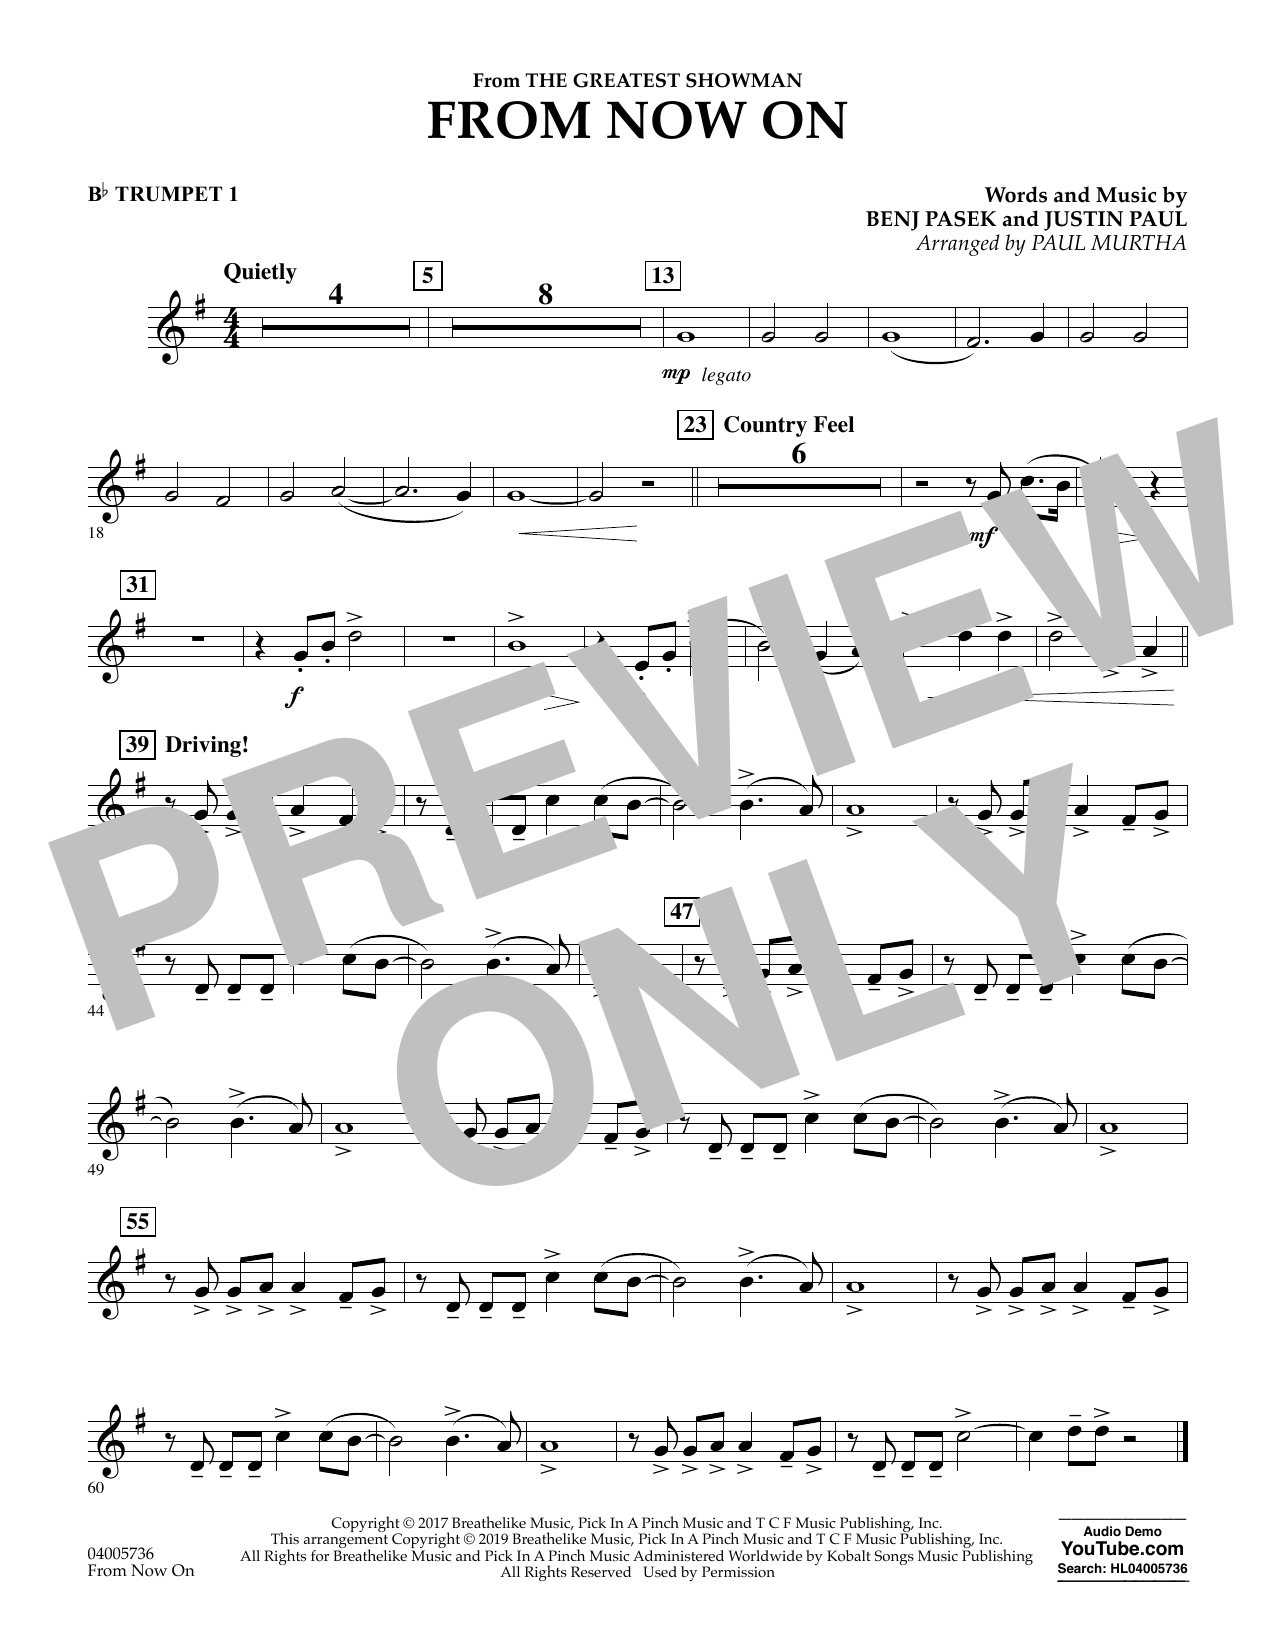 From Now On (from The Greatest Showman) (arr. Paul Murtha) - Bb Trumpet 1 (Concert Band)